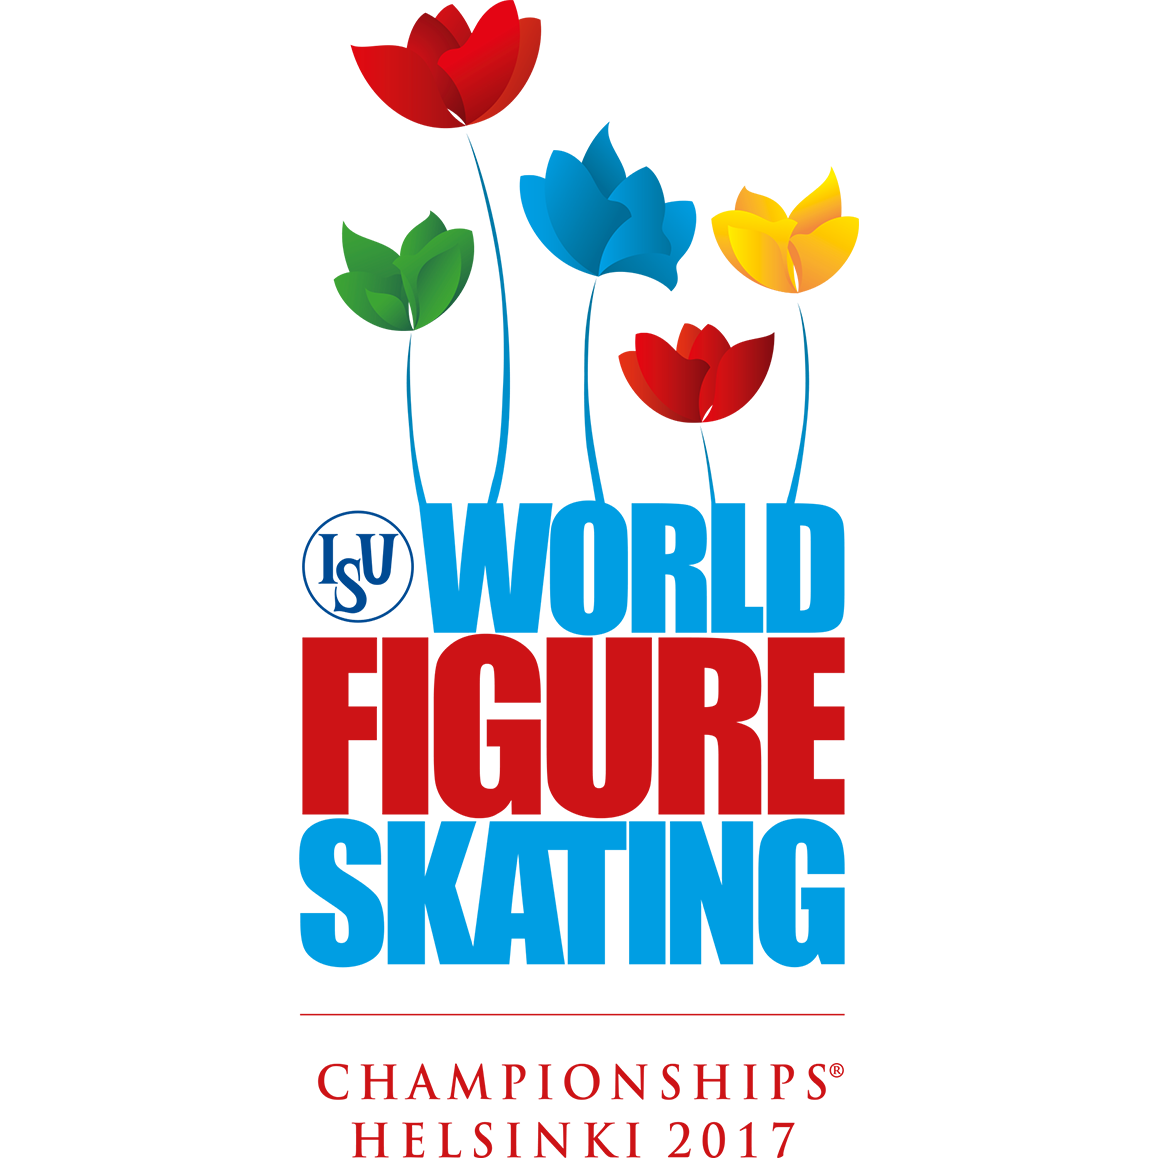 2017 World Figure Skating Championships